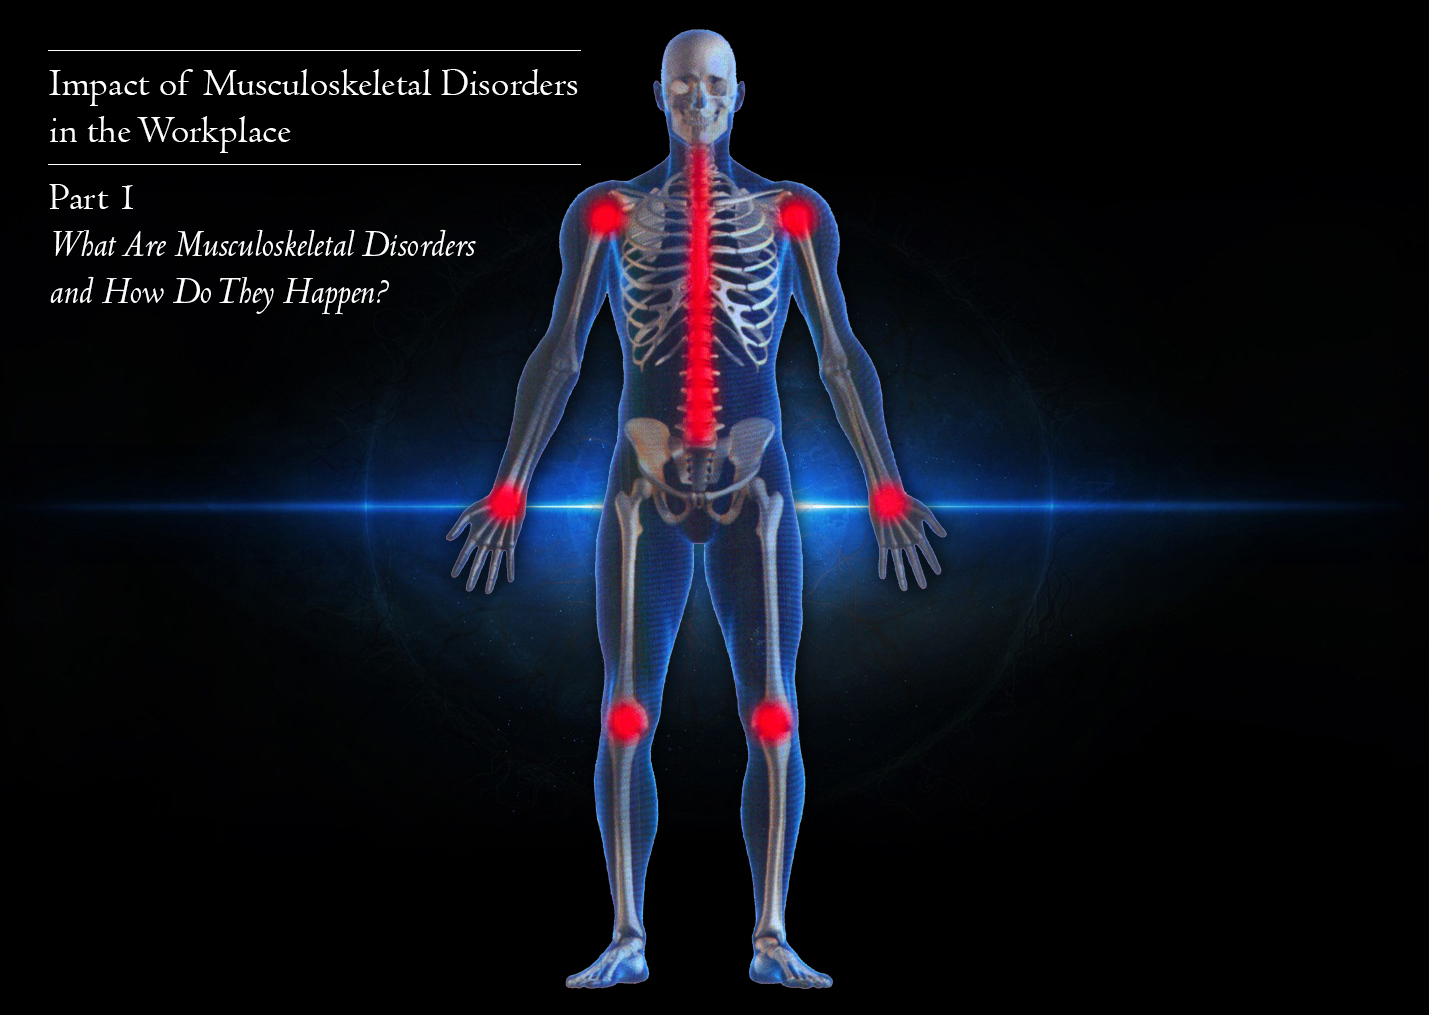 What are Musculoskeletal Disorders and How Do They Happen?